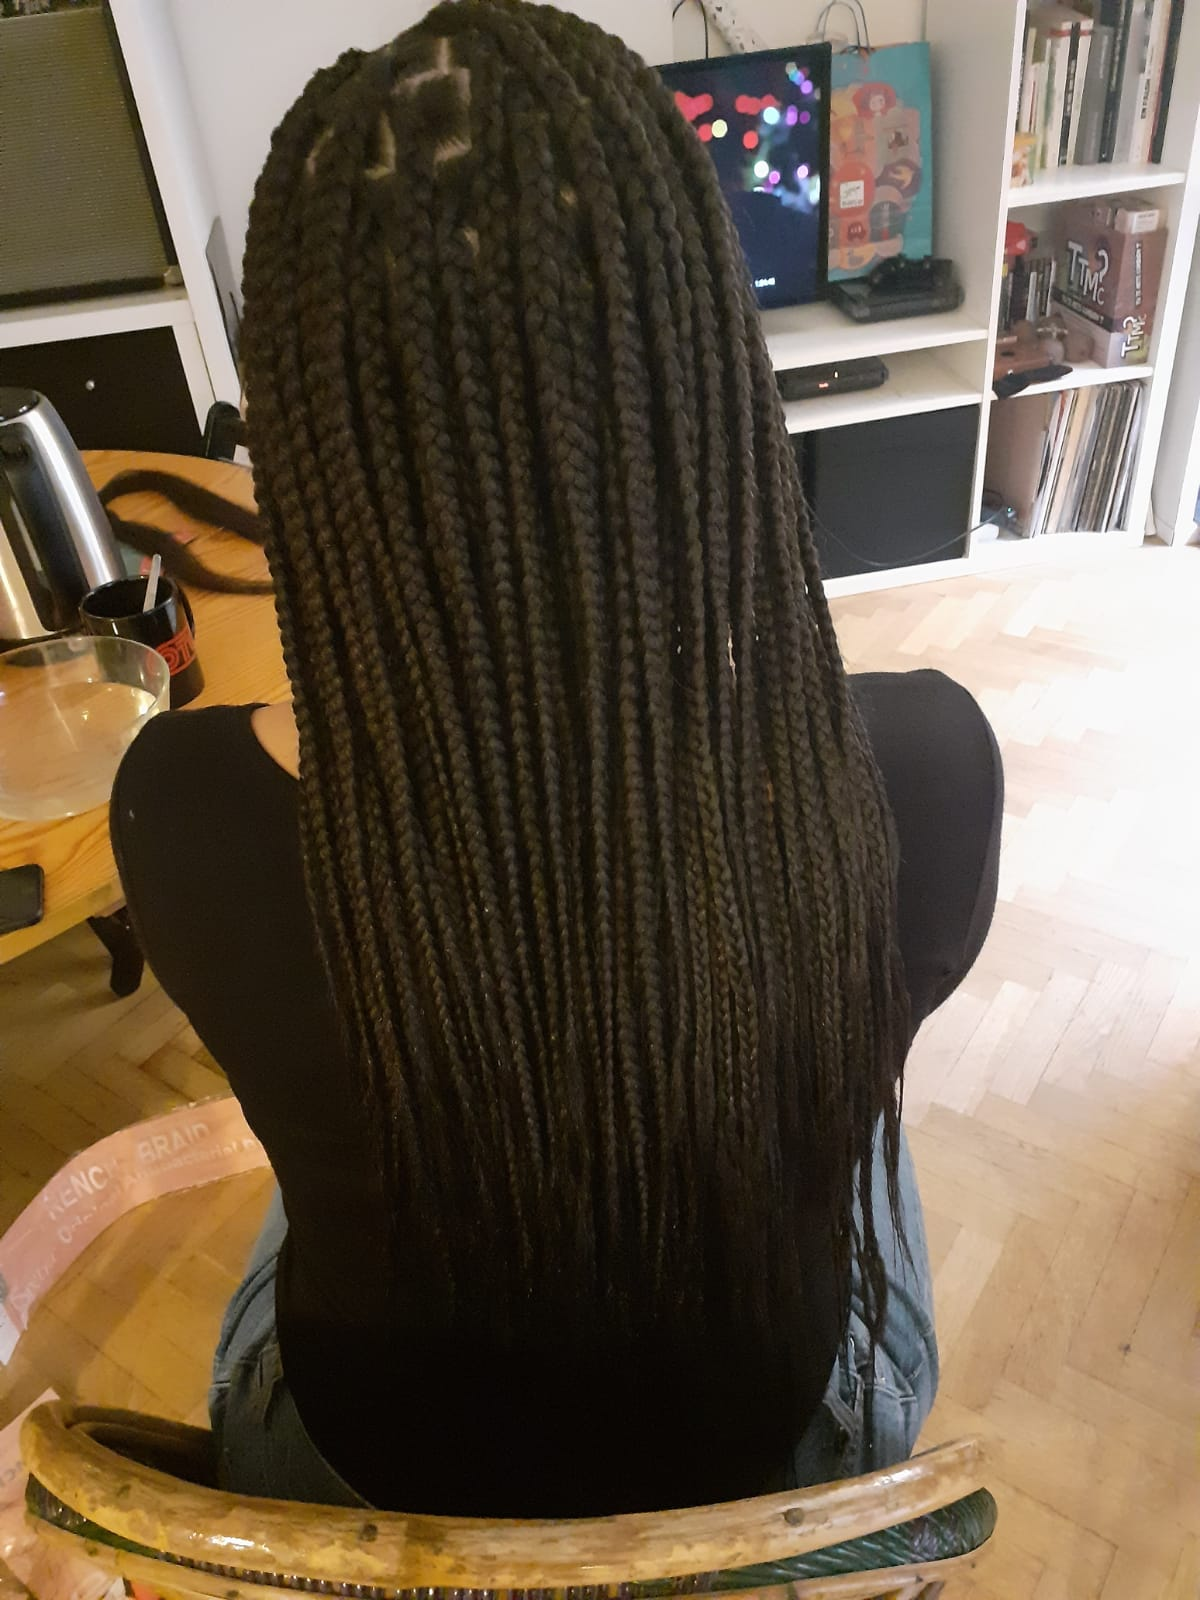 salon de coiffure afro tresse tresses box braids crochet braids vanilles tissages paris 75 77 78 91 92 93 94 95 OYSSTLJJ